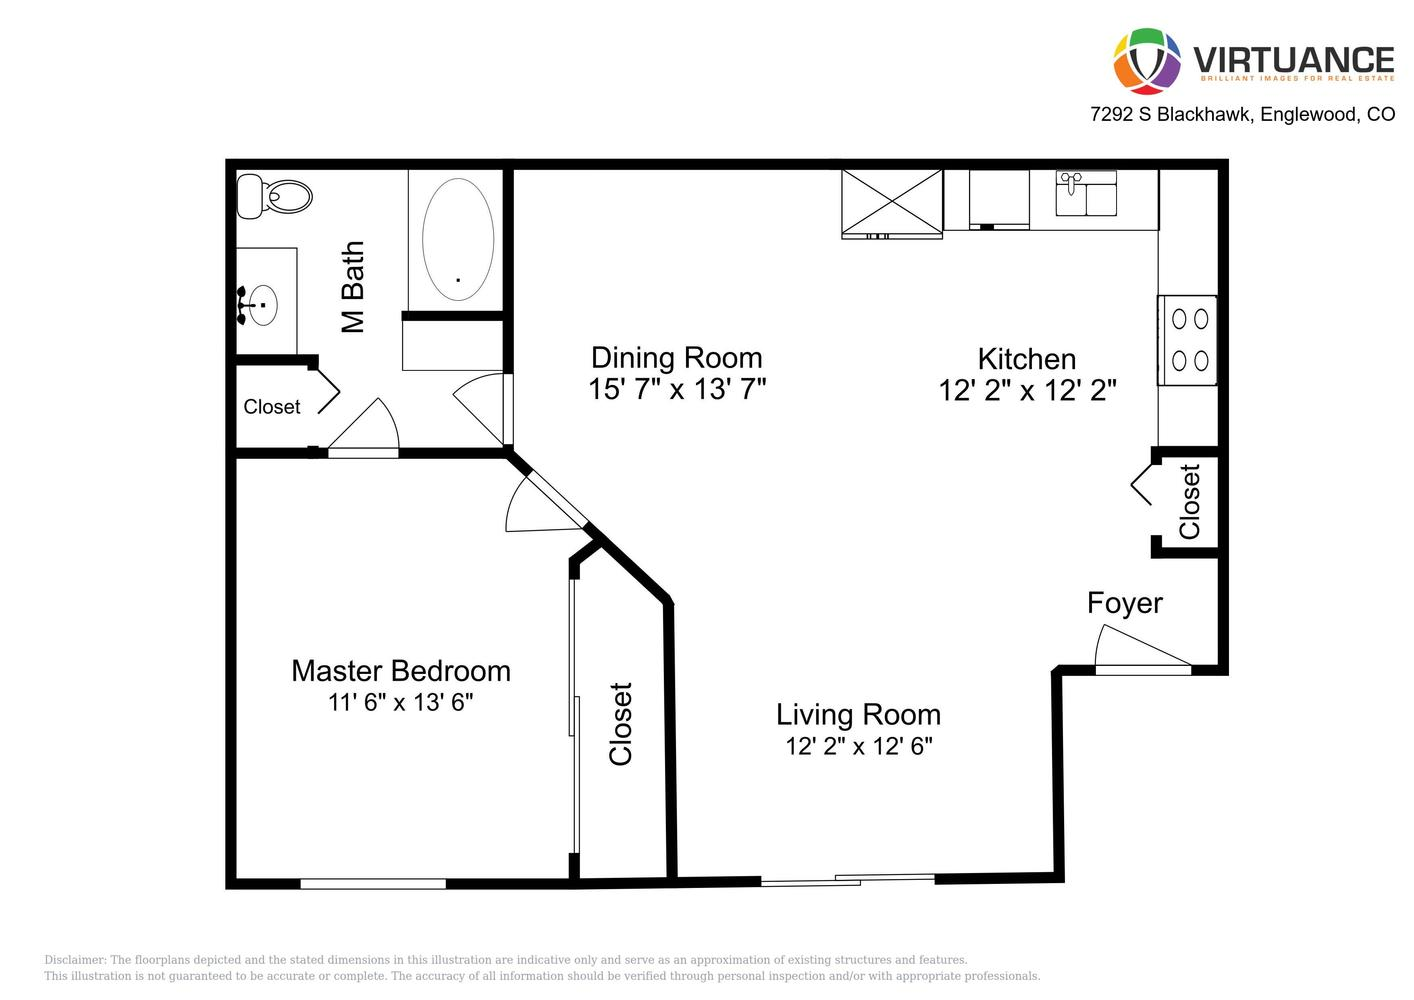 Floor Plan Of 7292 S Blackhawk St #204 Englewood